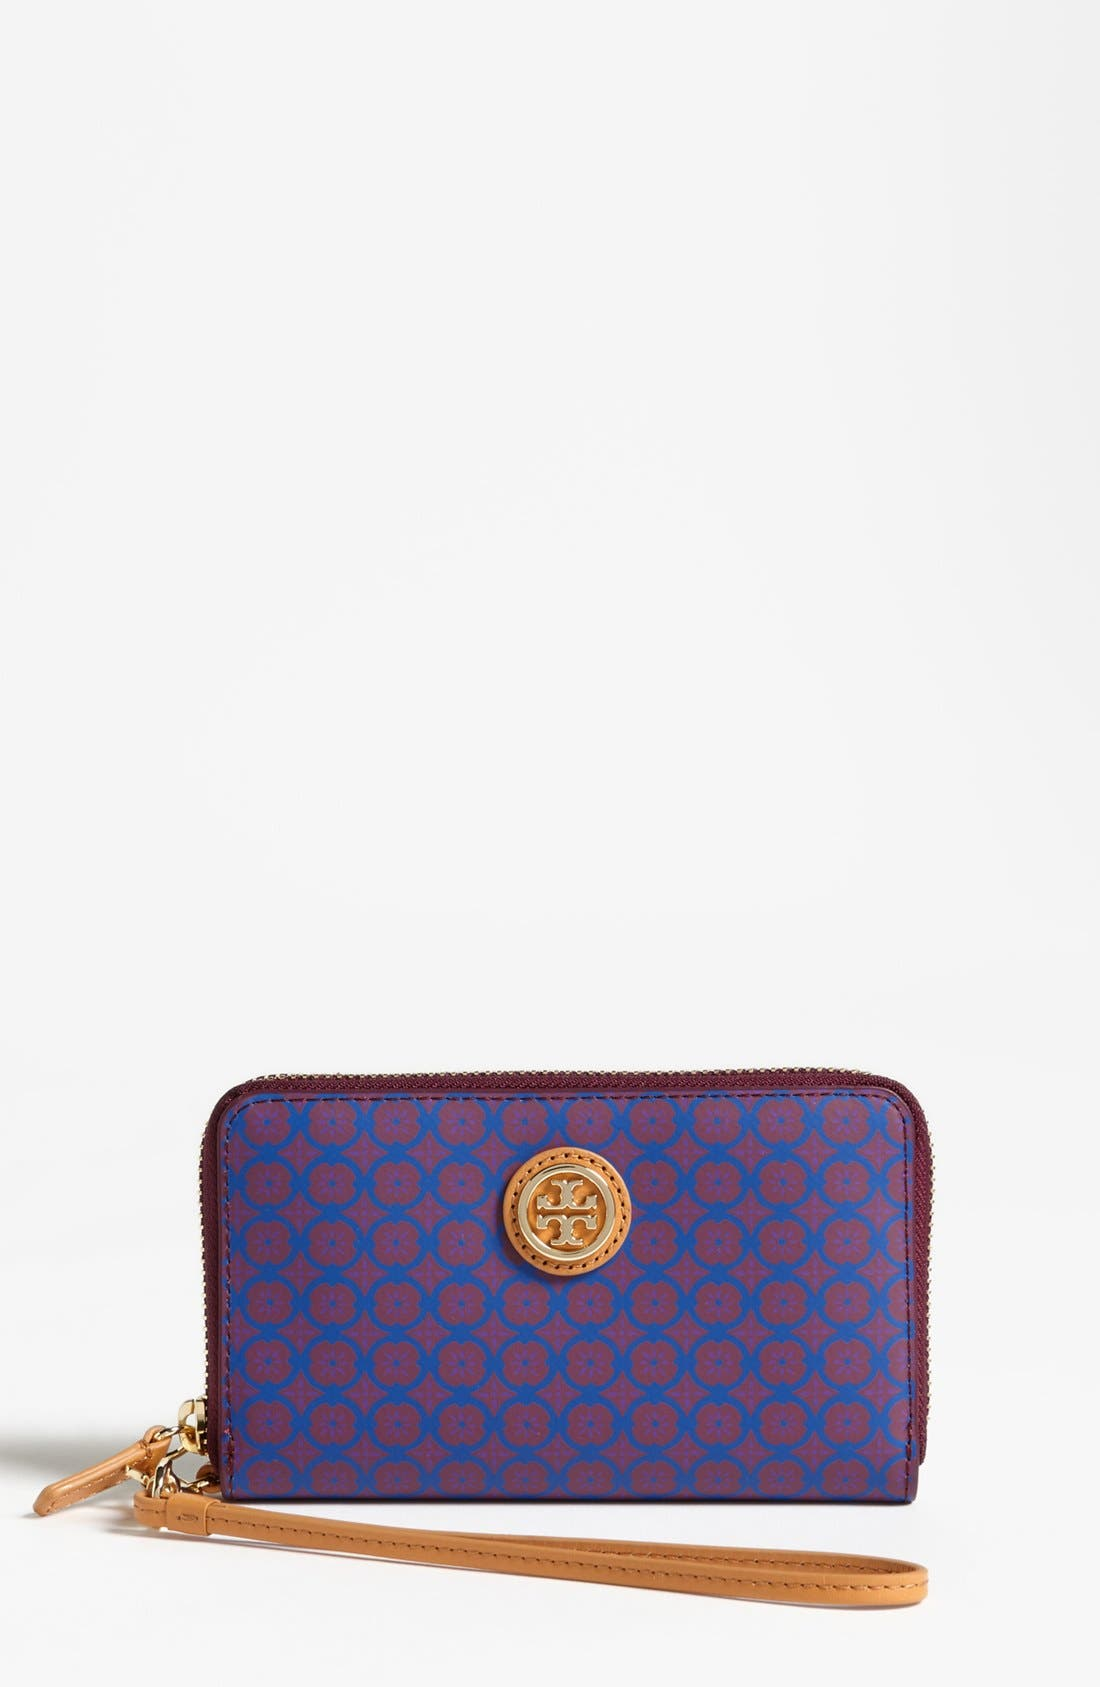 Alternate Image 1 Selected - Tory Burch 'Halland' Smart Phone Wristlet